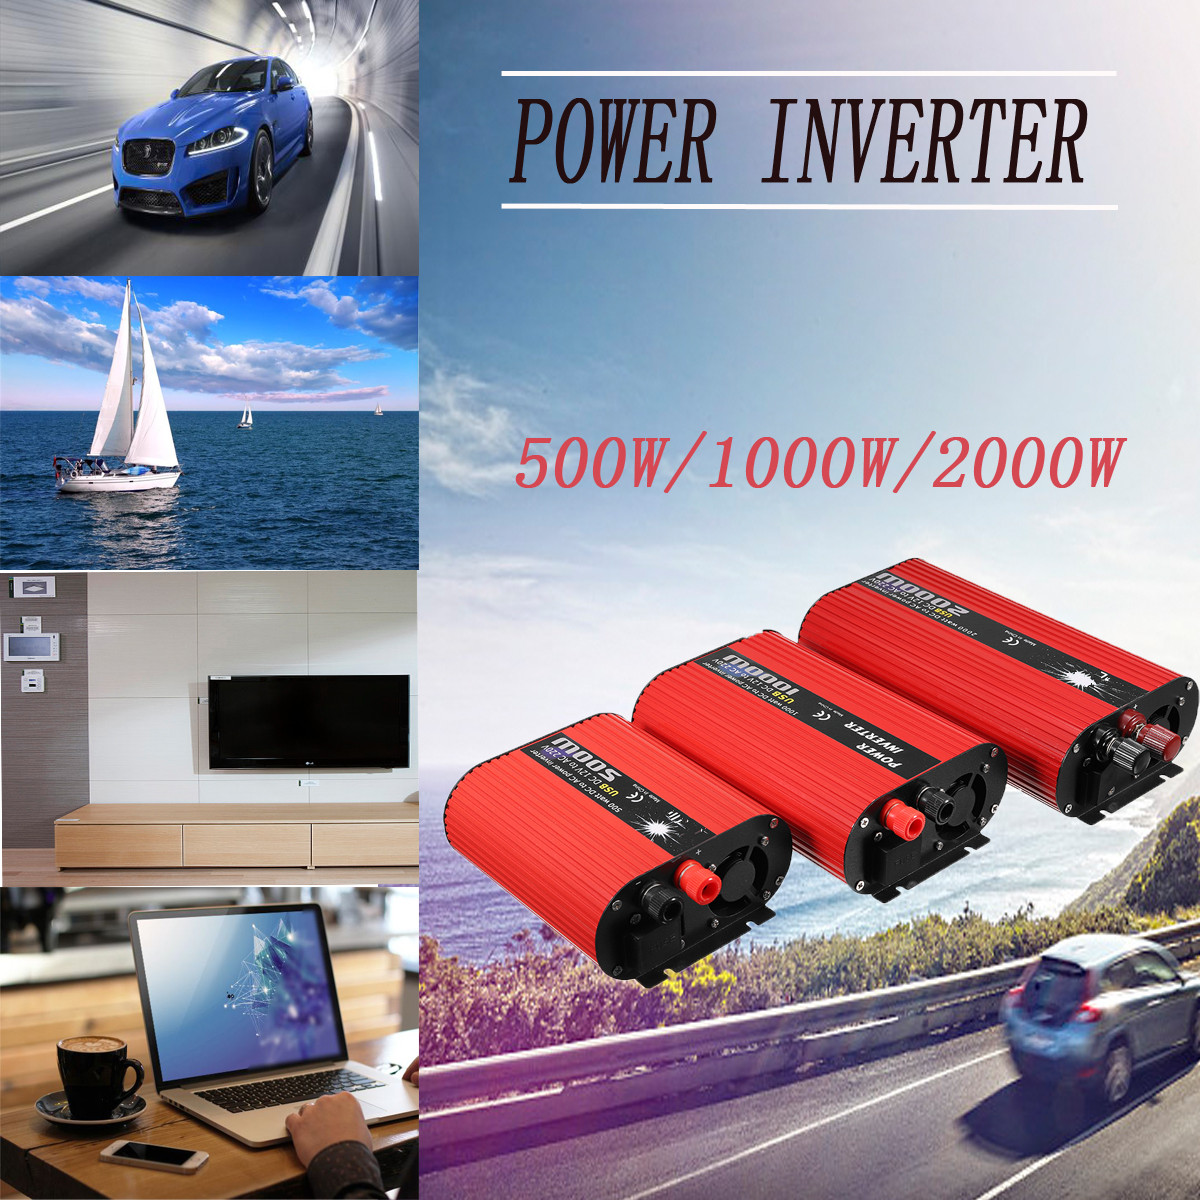 Autoleader 2000W 1000W 500W Car Power Inverters Voltage Transformer Converter 12 220 Charger on Display Solar Adapter car inverter 12v 220v power inverters voltage transformer converter 12 220 1000w charger on display solar adapter 12v 220v dy104